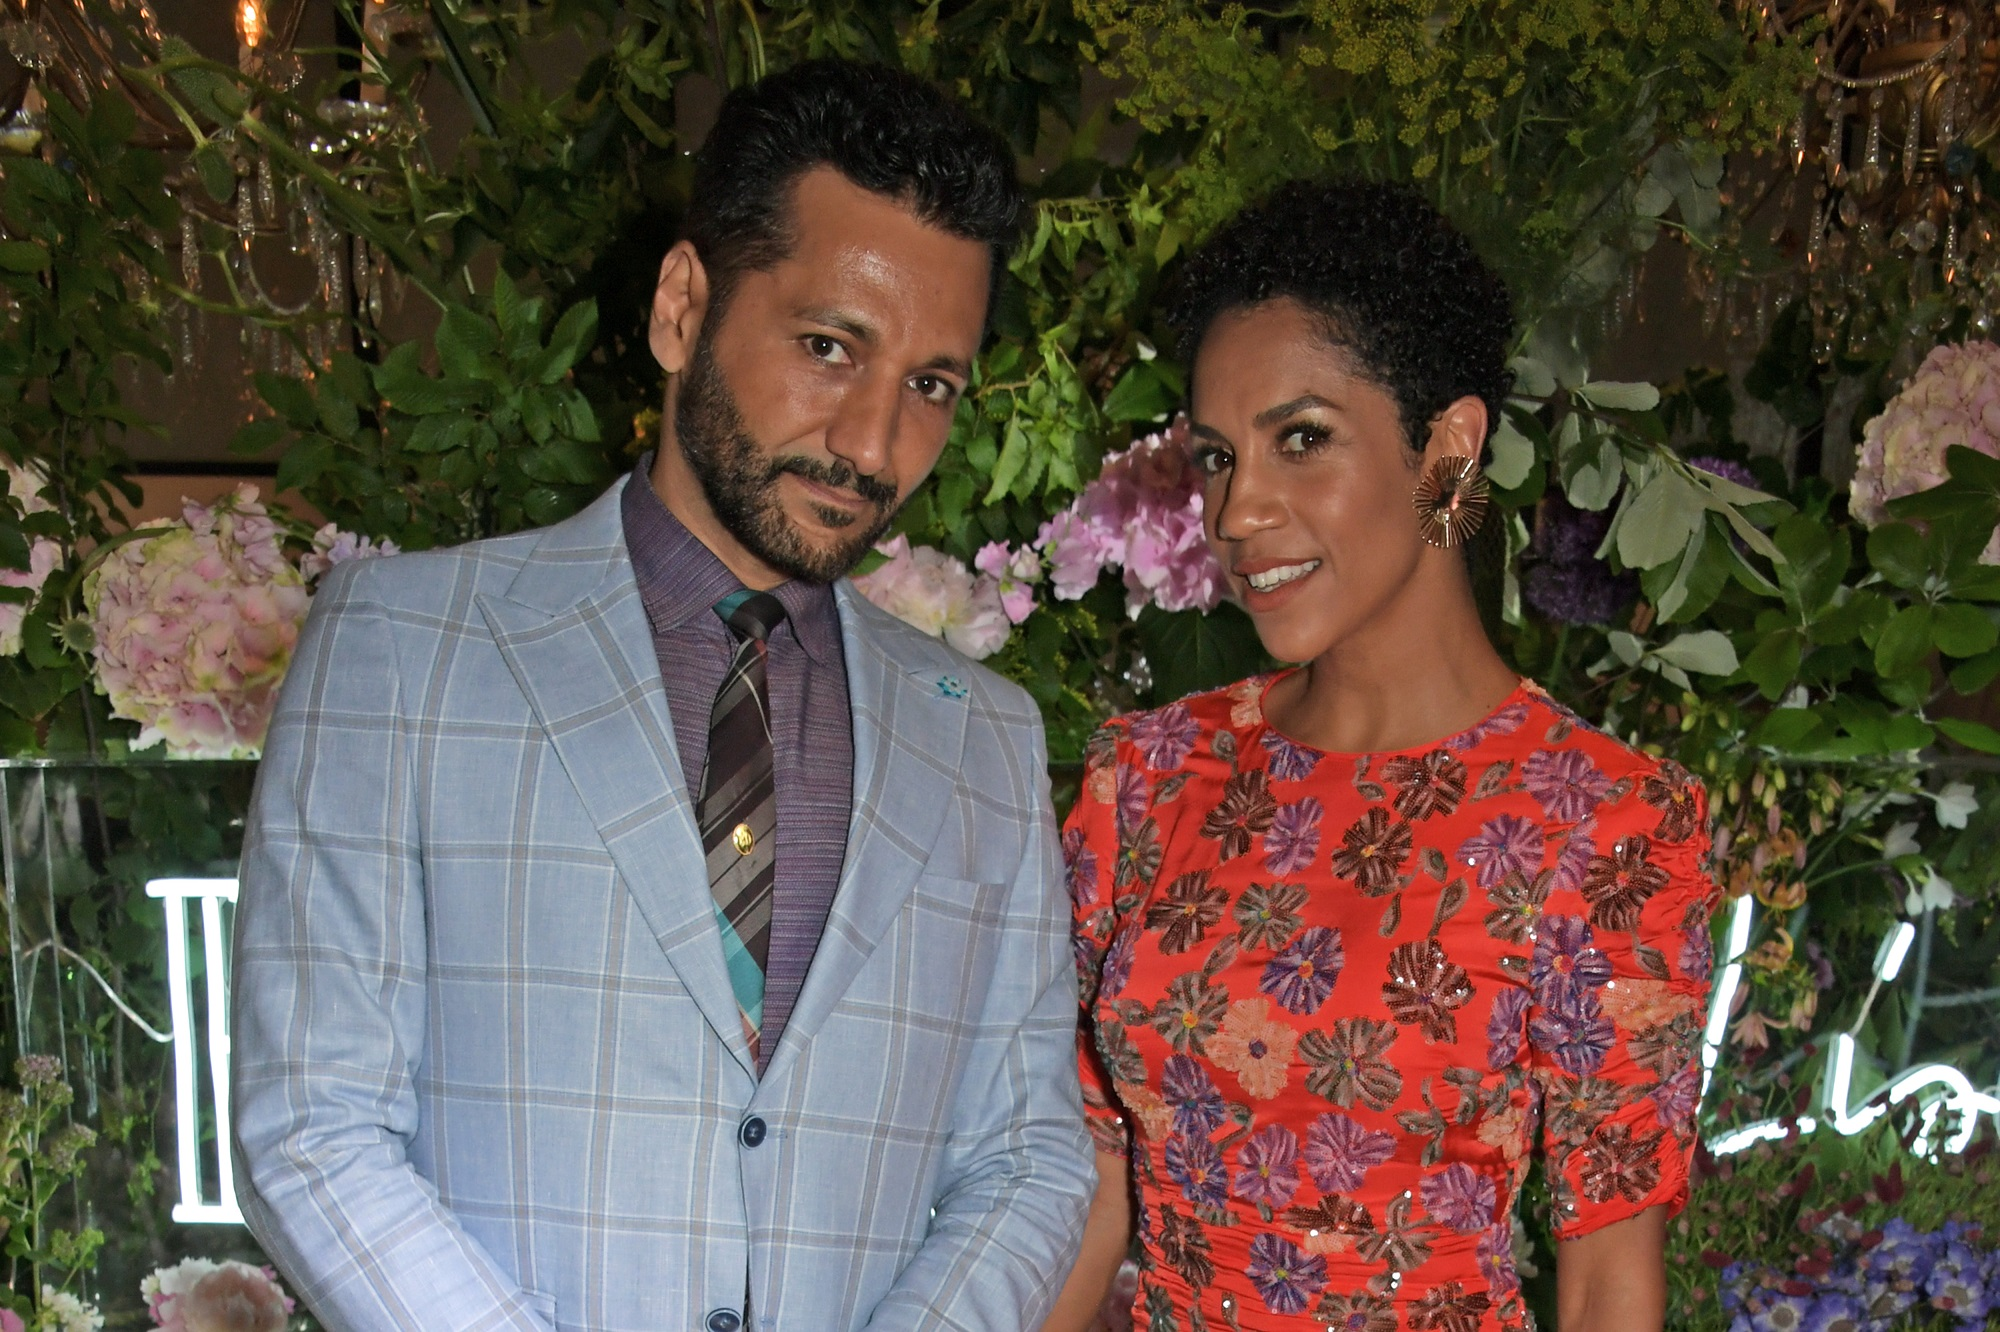 Cas Anvar and Dominique Tipper of The Expanse